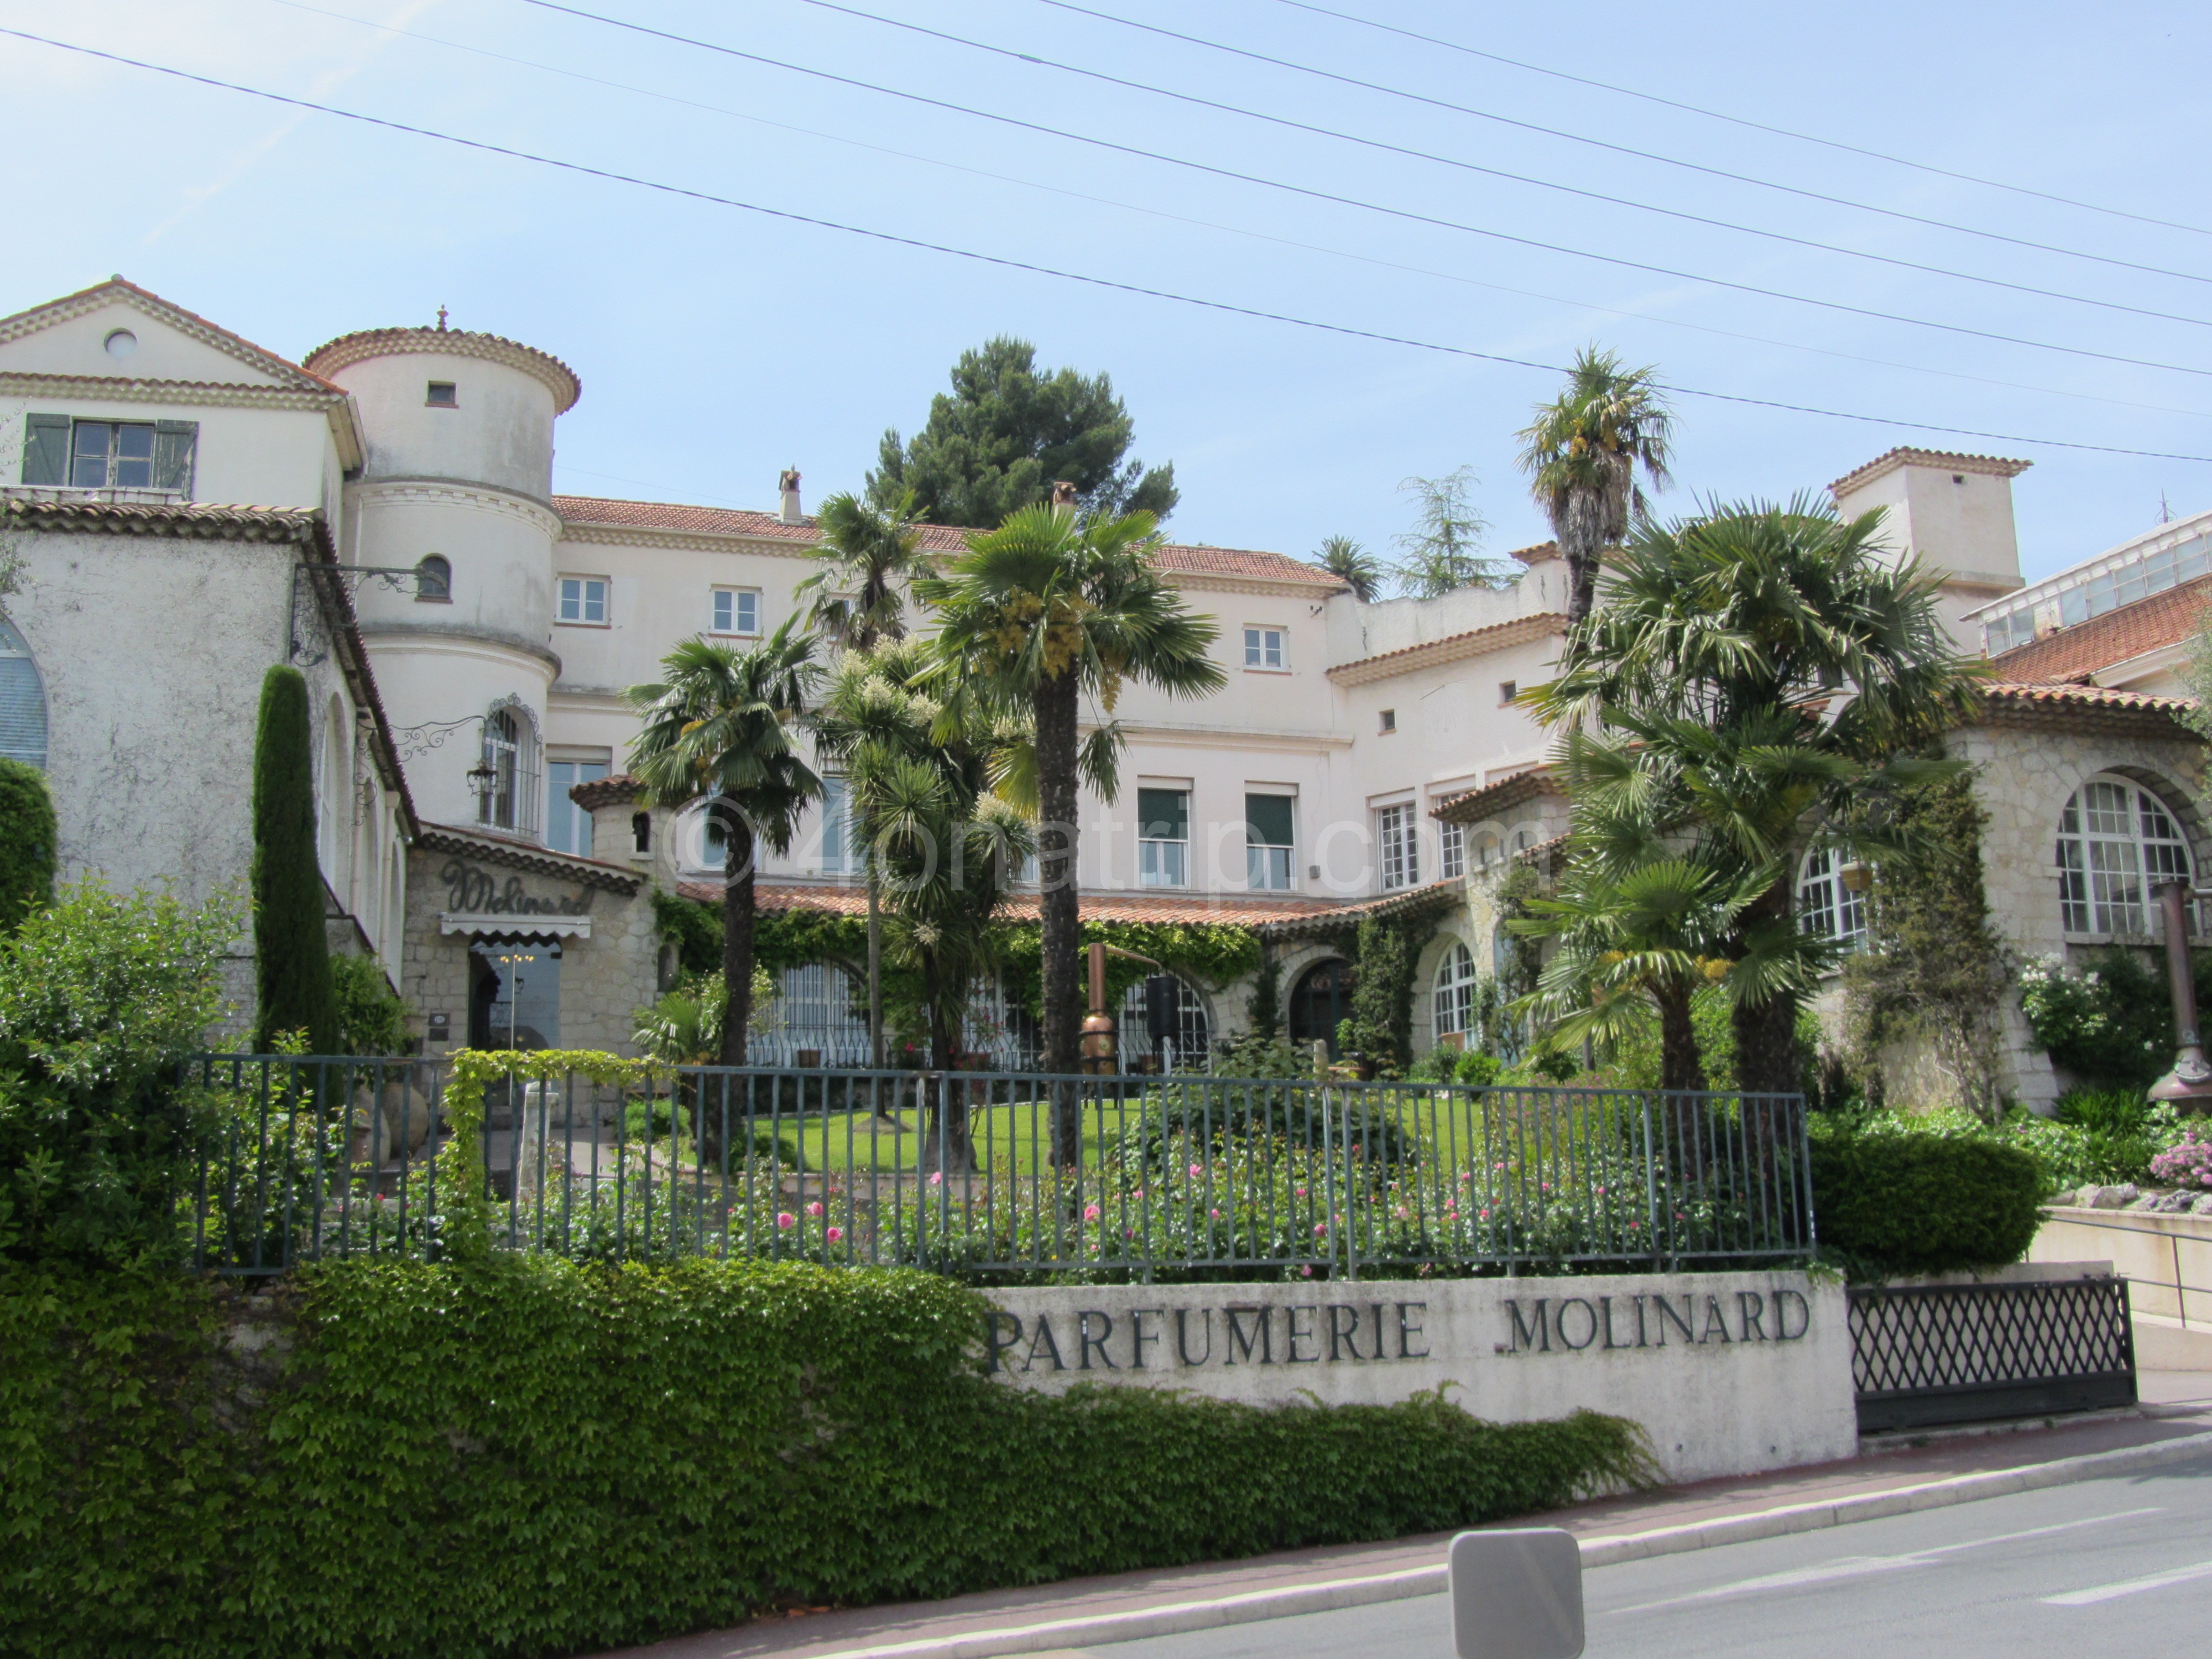 Molinard Parfumerie in Grasse France | 4 On A Trip